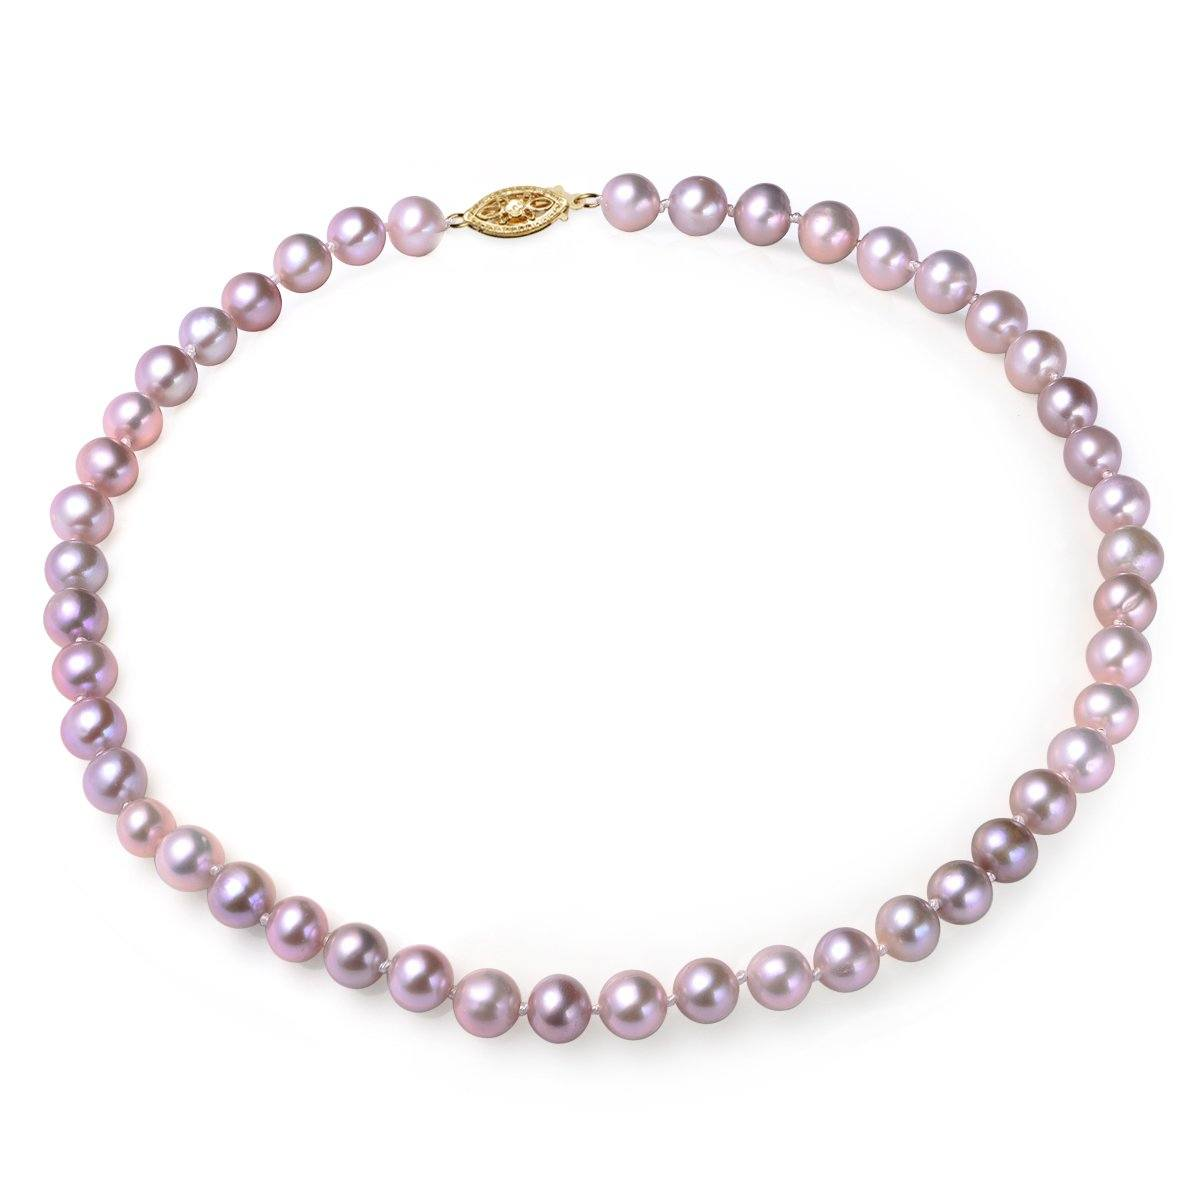 lavender 8-9mm aaa quality cultured freshwater pearl necklace with 14k solid yellow gold fish hook